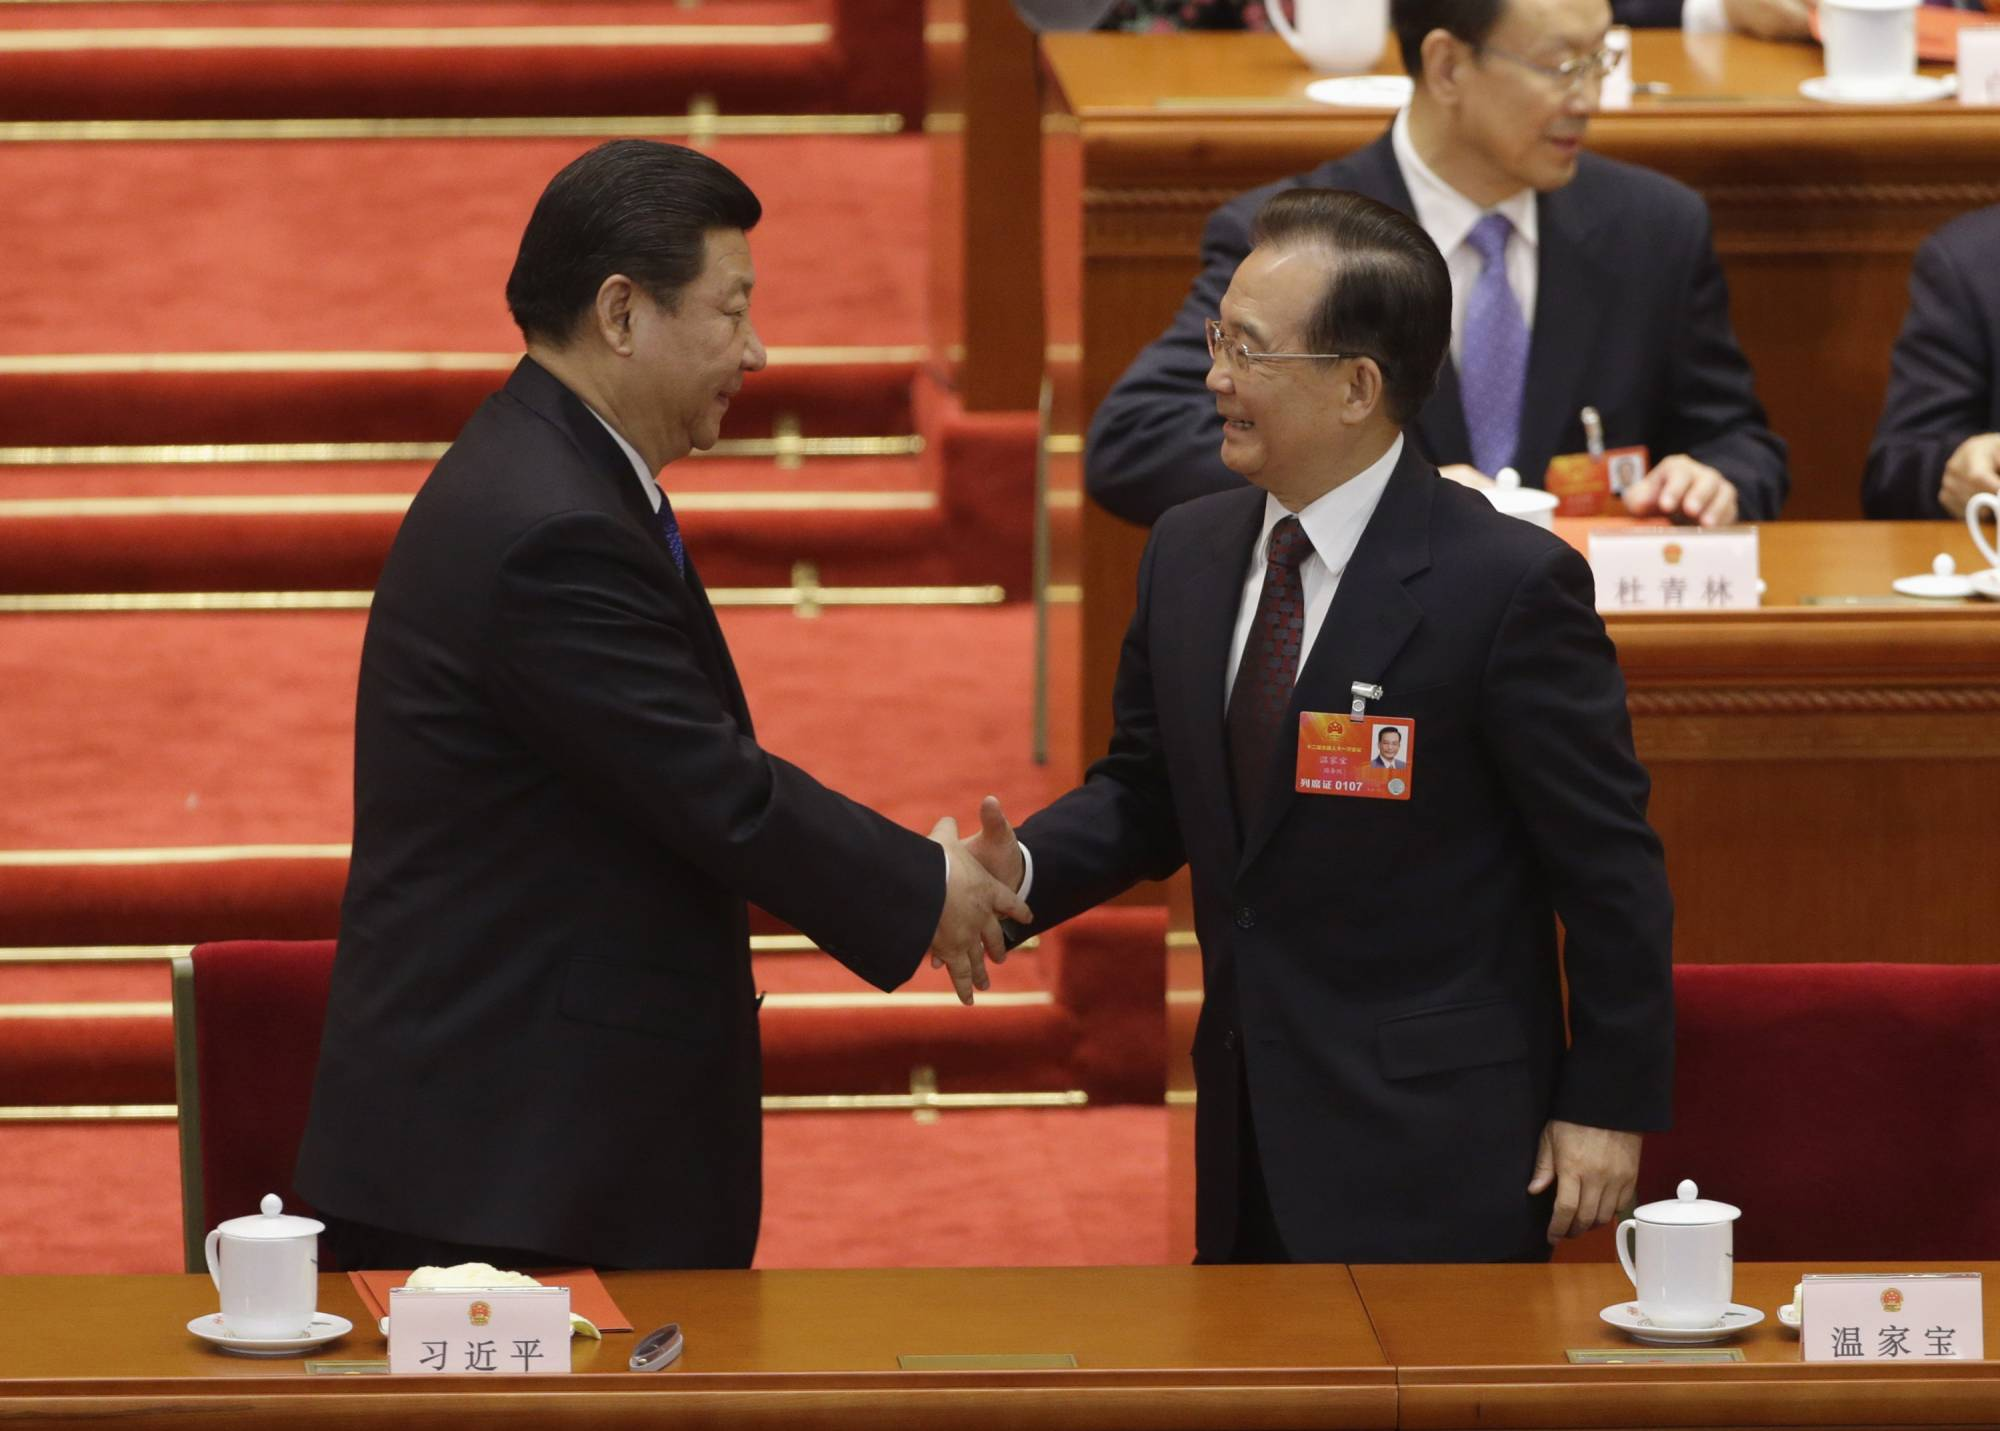 Newly elected Chinese President Xi Jinping and former Premier Wen Jiabao shake hands during a meeting of the National People's Congress at Beijing's Great Hall of the People in March 2013.  | REUTERS